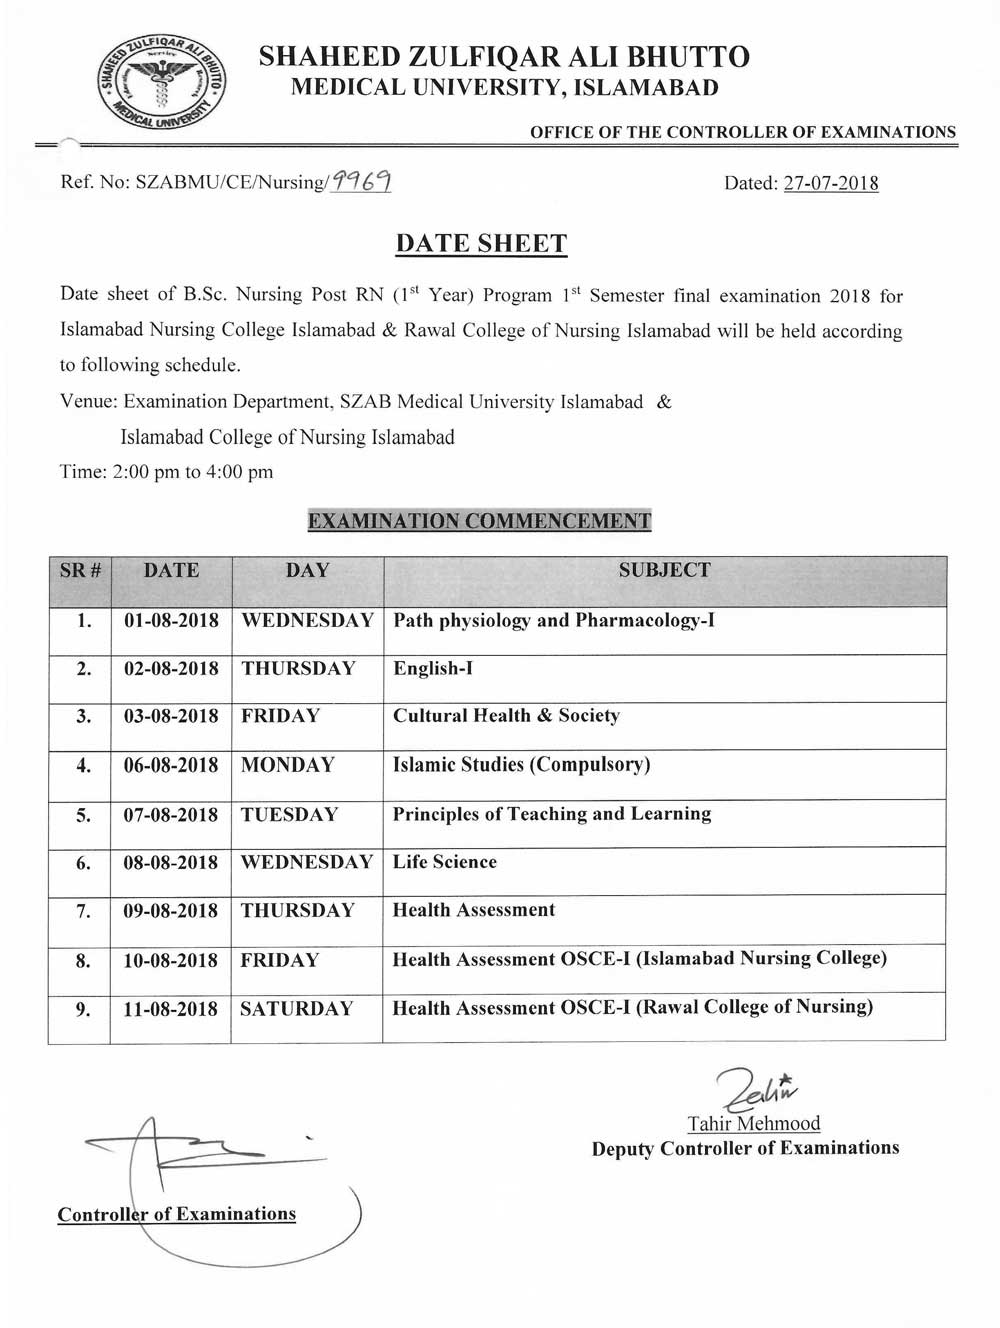 Date Sheet - B.Sc. Nursing Post RN 1st Semester Final Examinations 2018